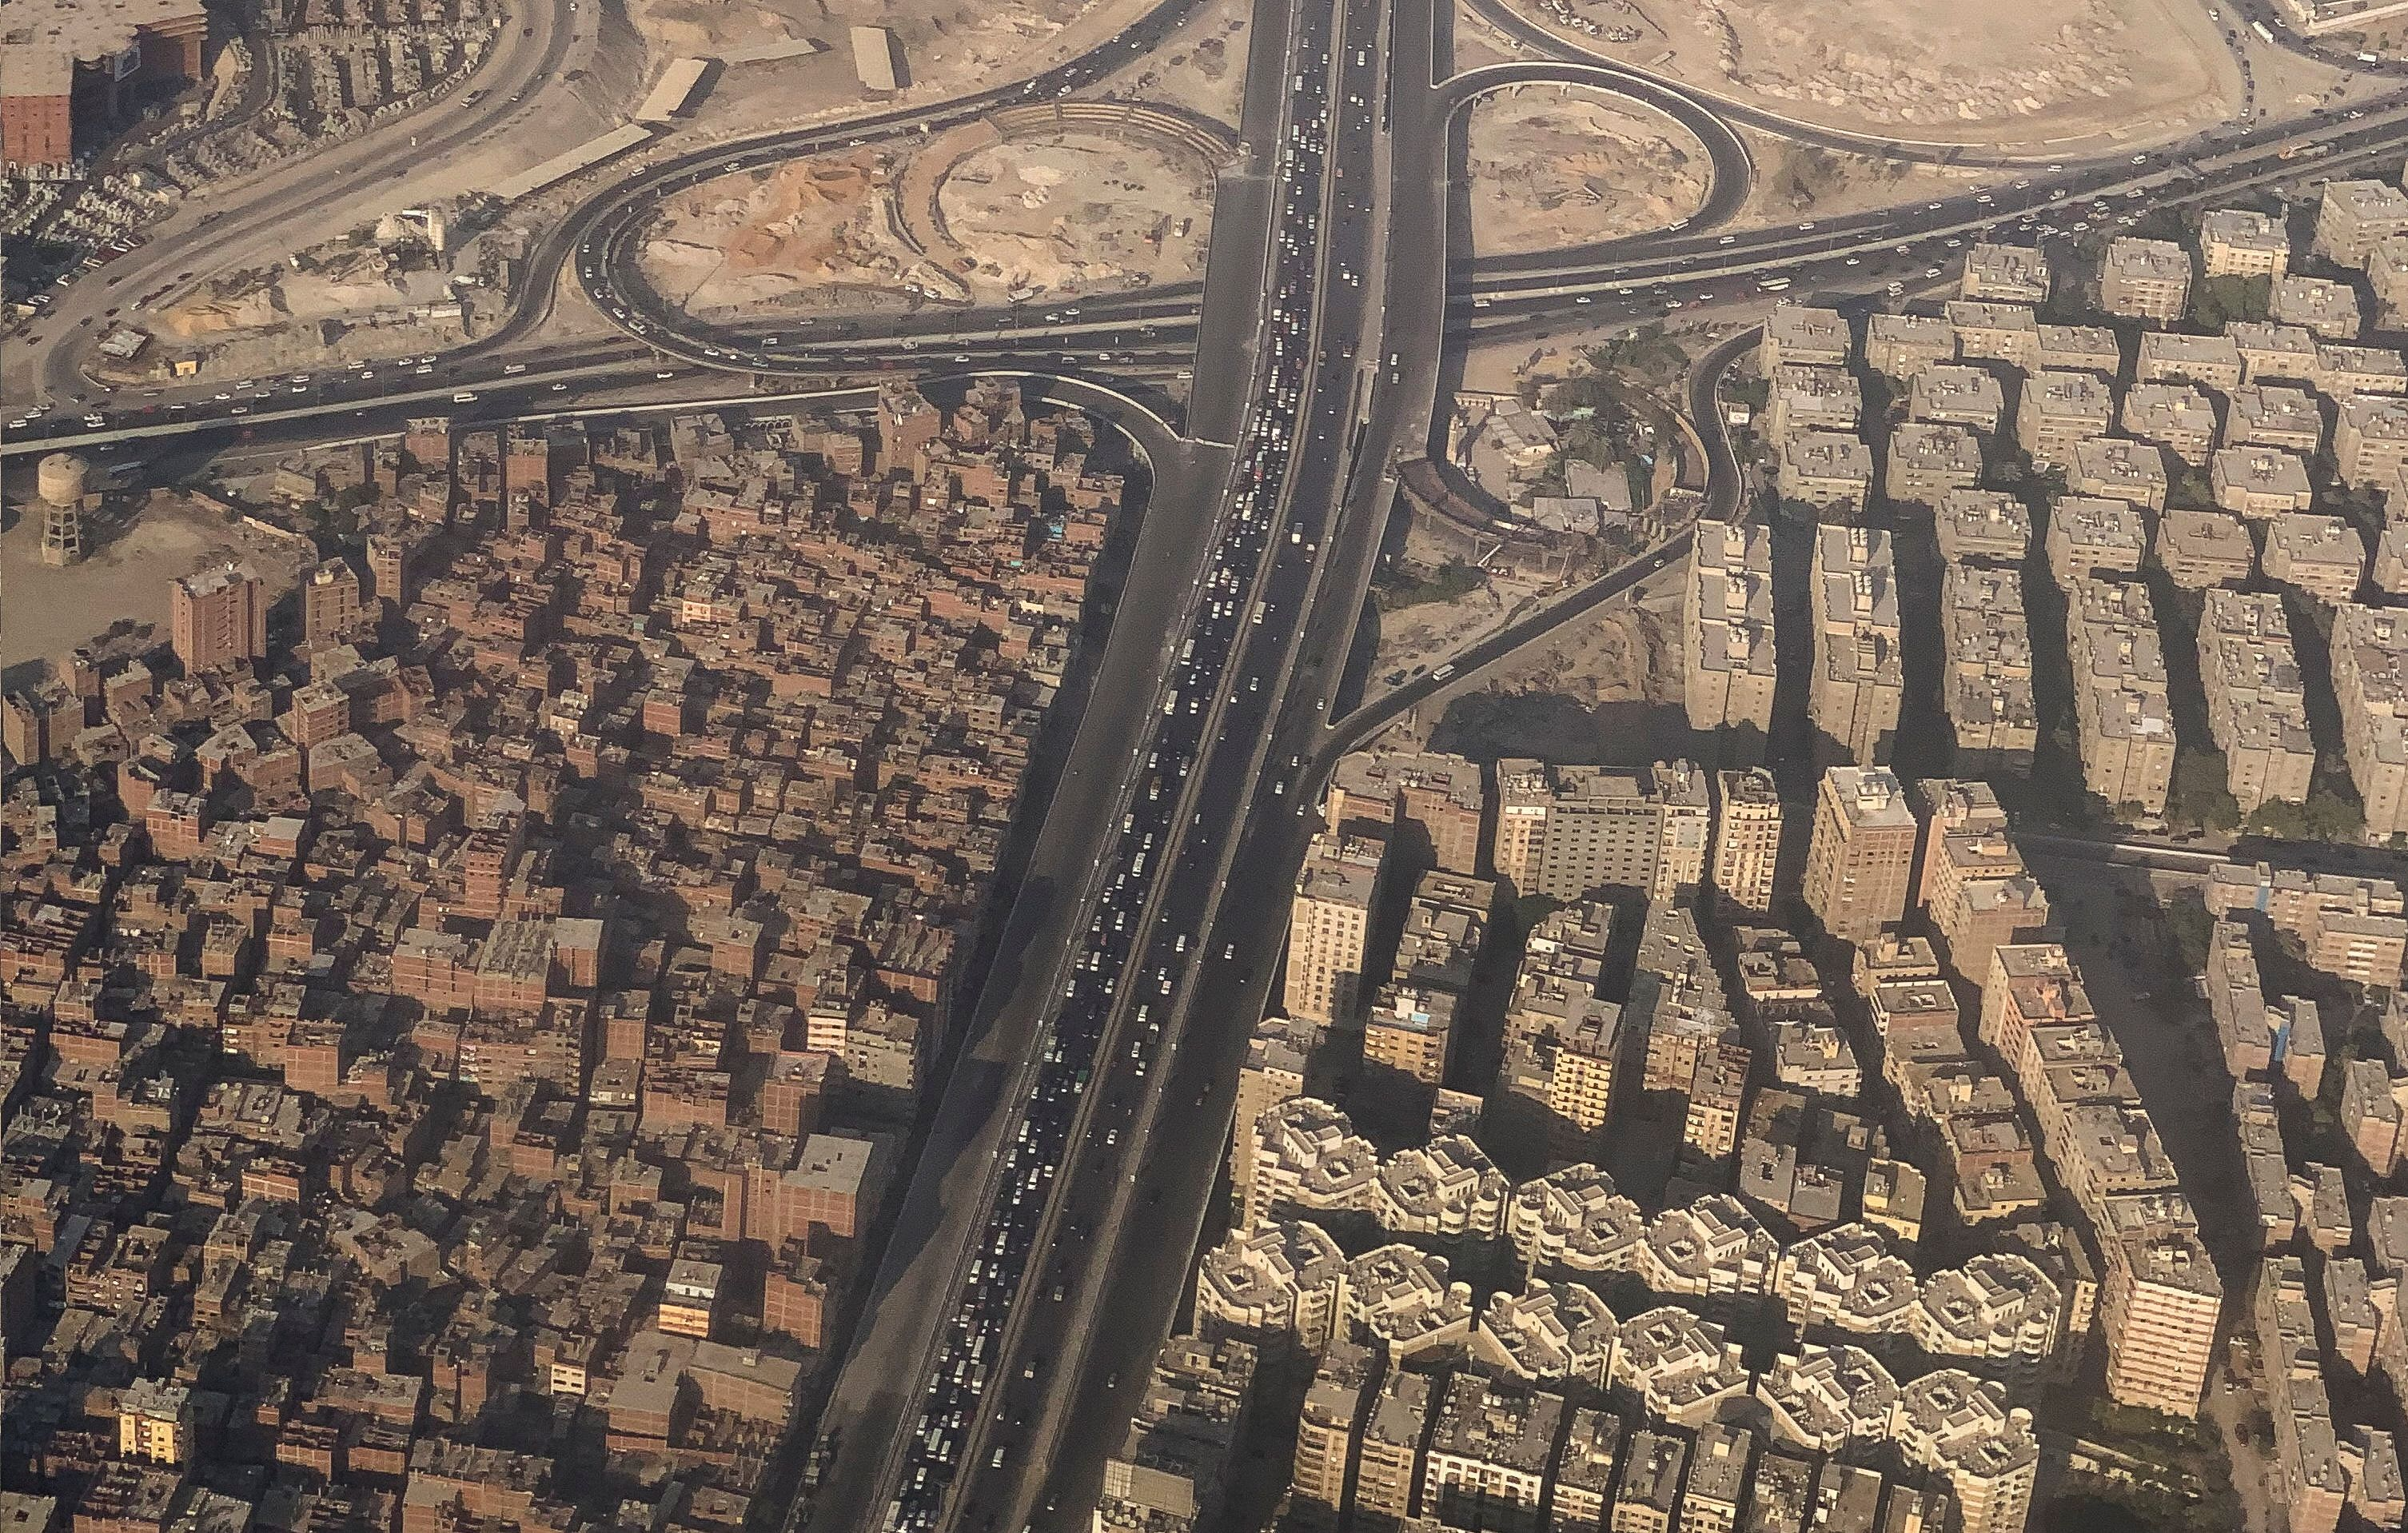 An aerial view of Cairo's traffic and compressed houses with new houses project is pictured through the window of an airplane on a flight between Cairo and Doha, Egypt August 10, 2021.   REUTERS/Amr Abdallah Dalsh